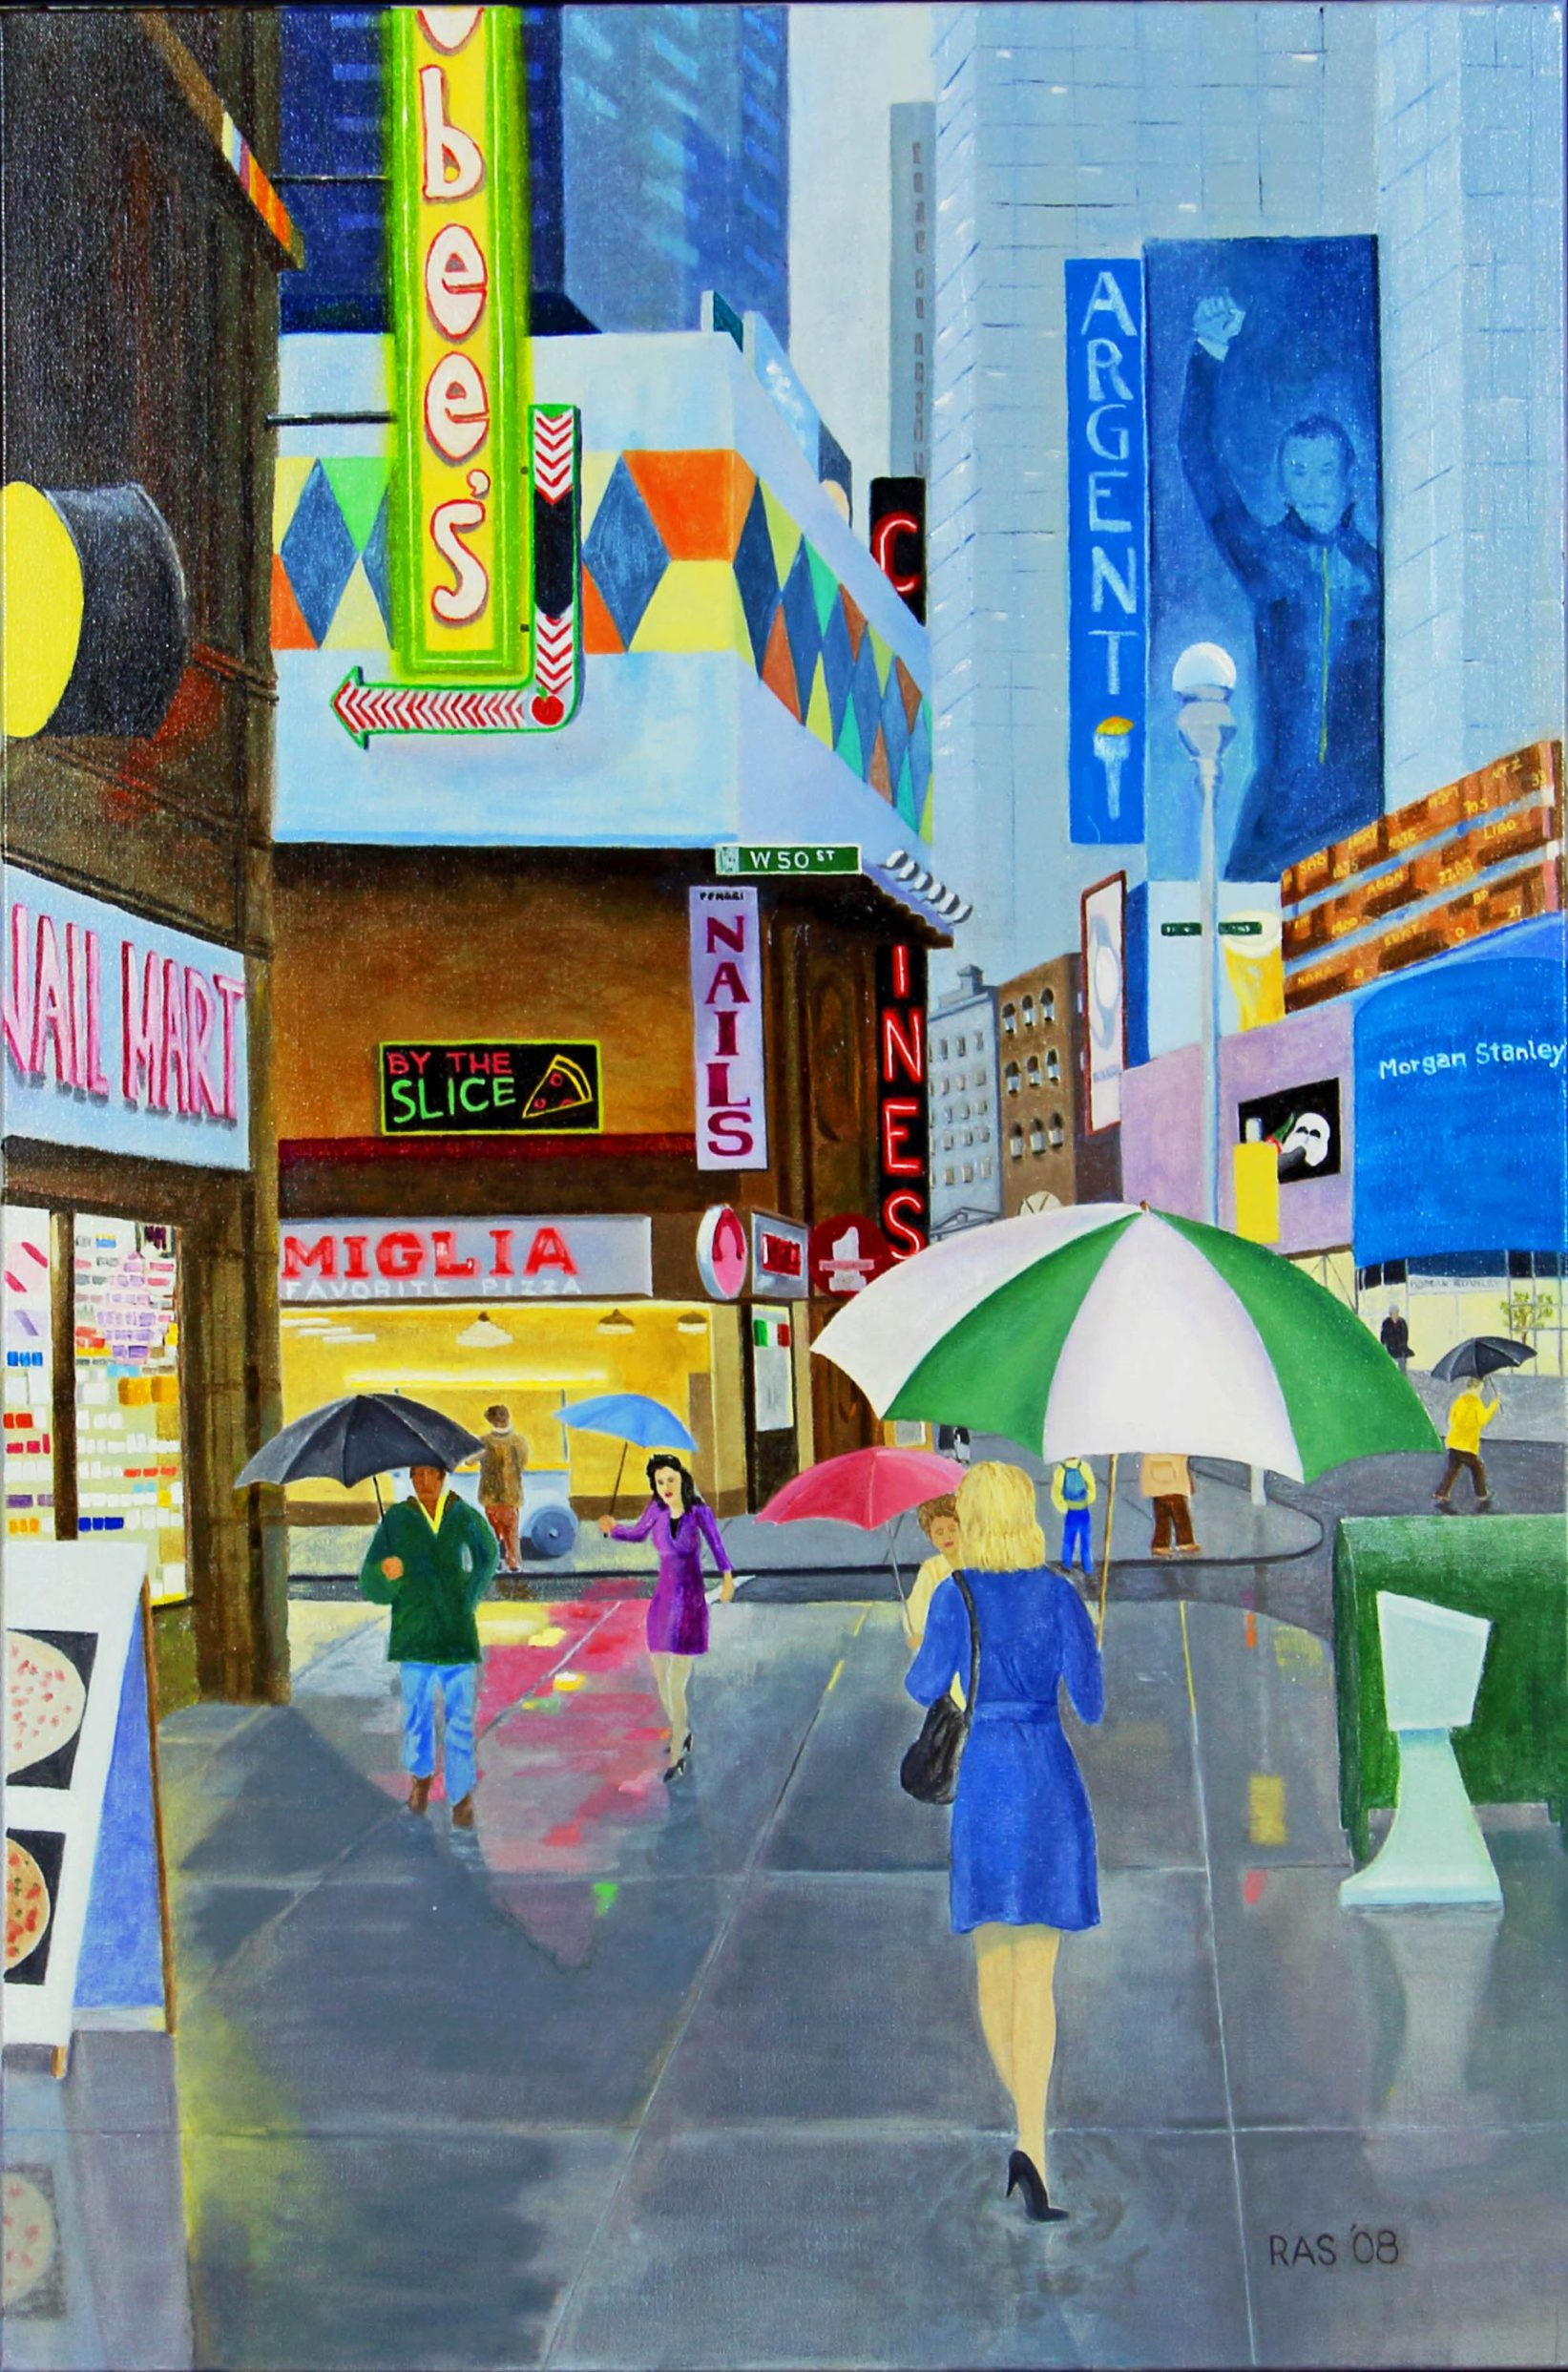 Midtown NYC, figures on sidewalk, walking with umbrellas up. Storefronts lit up.